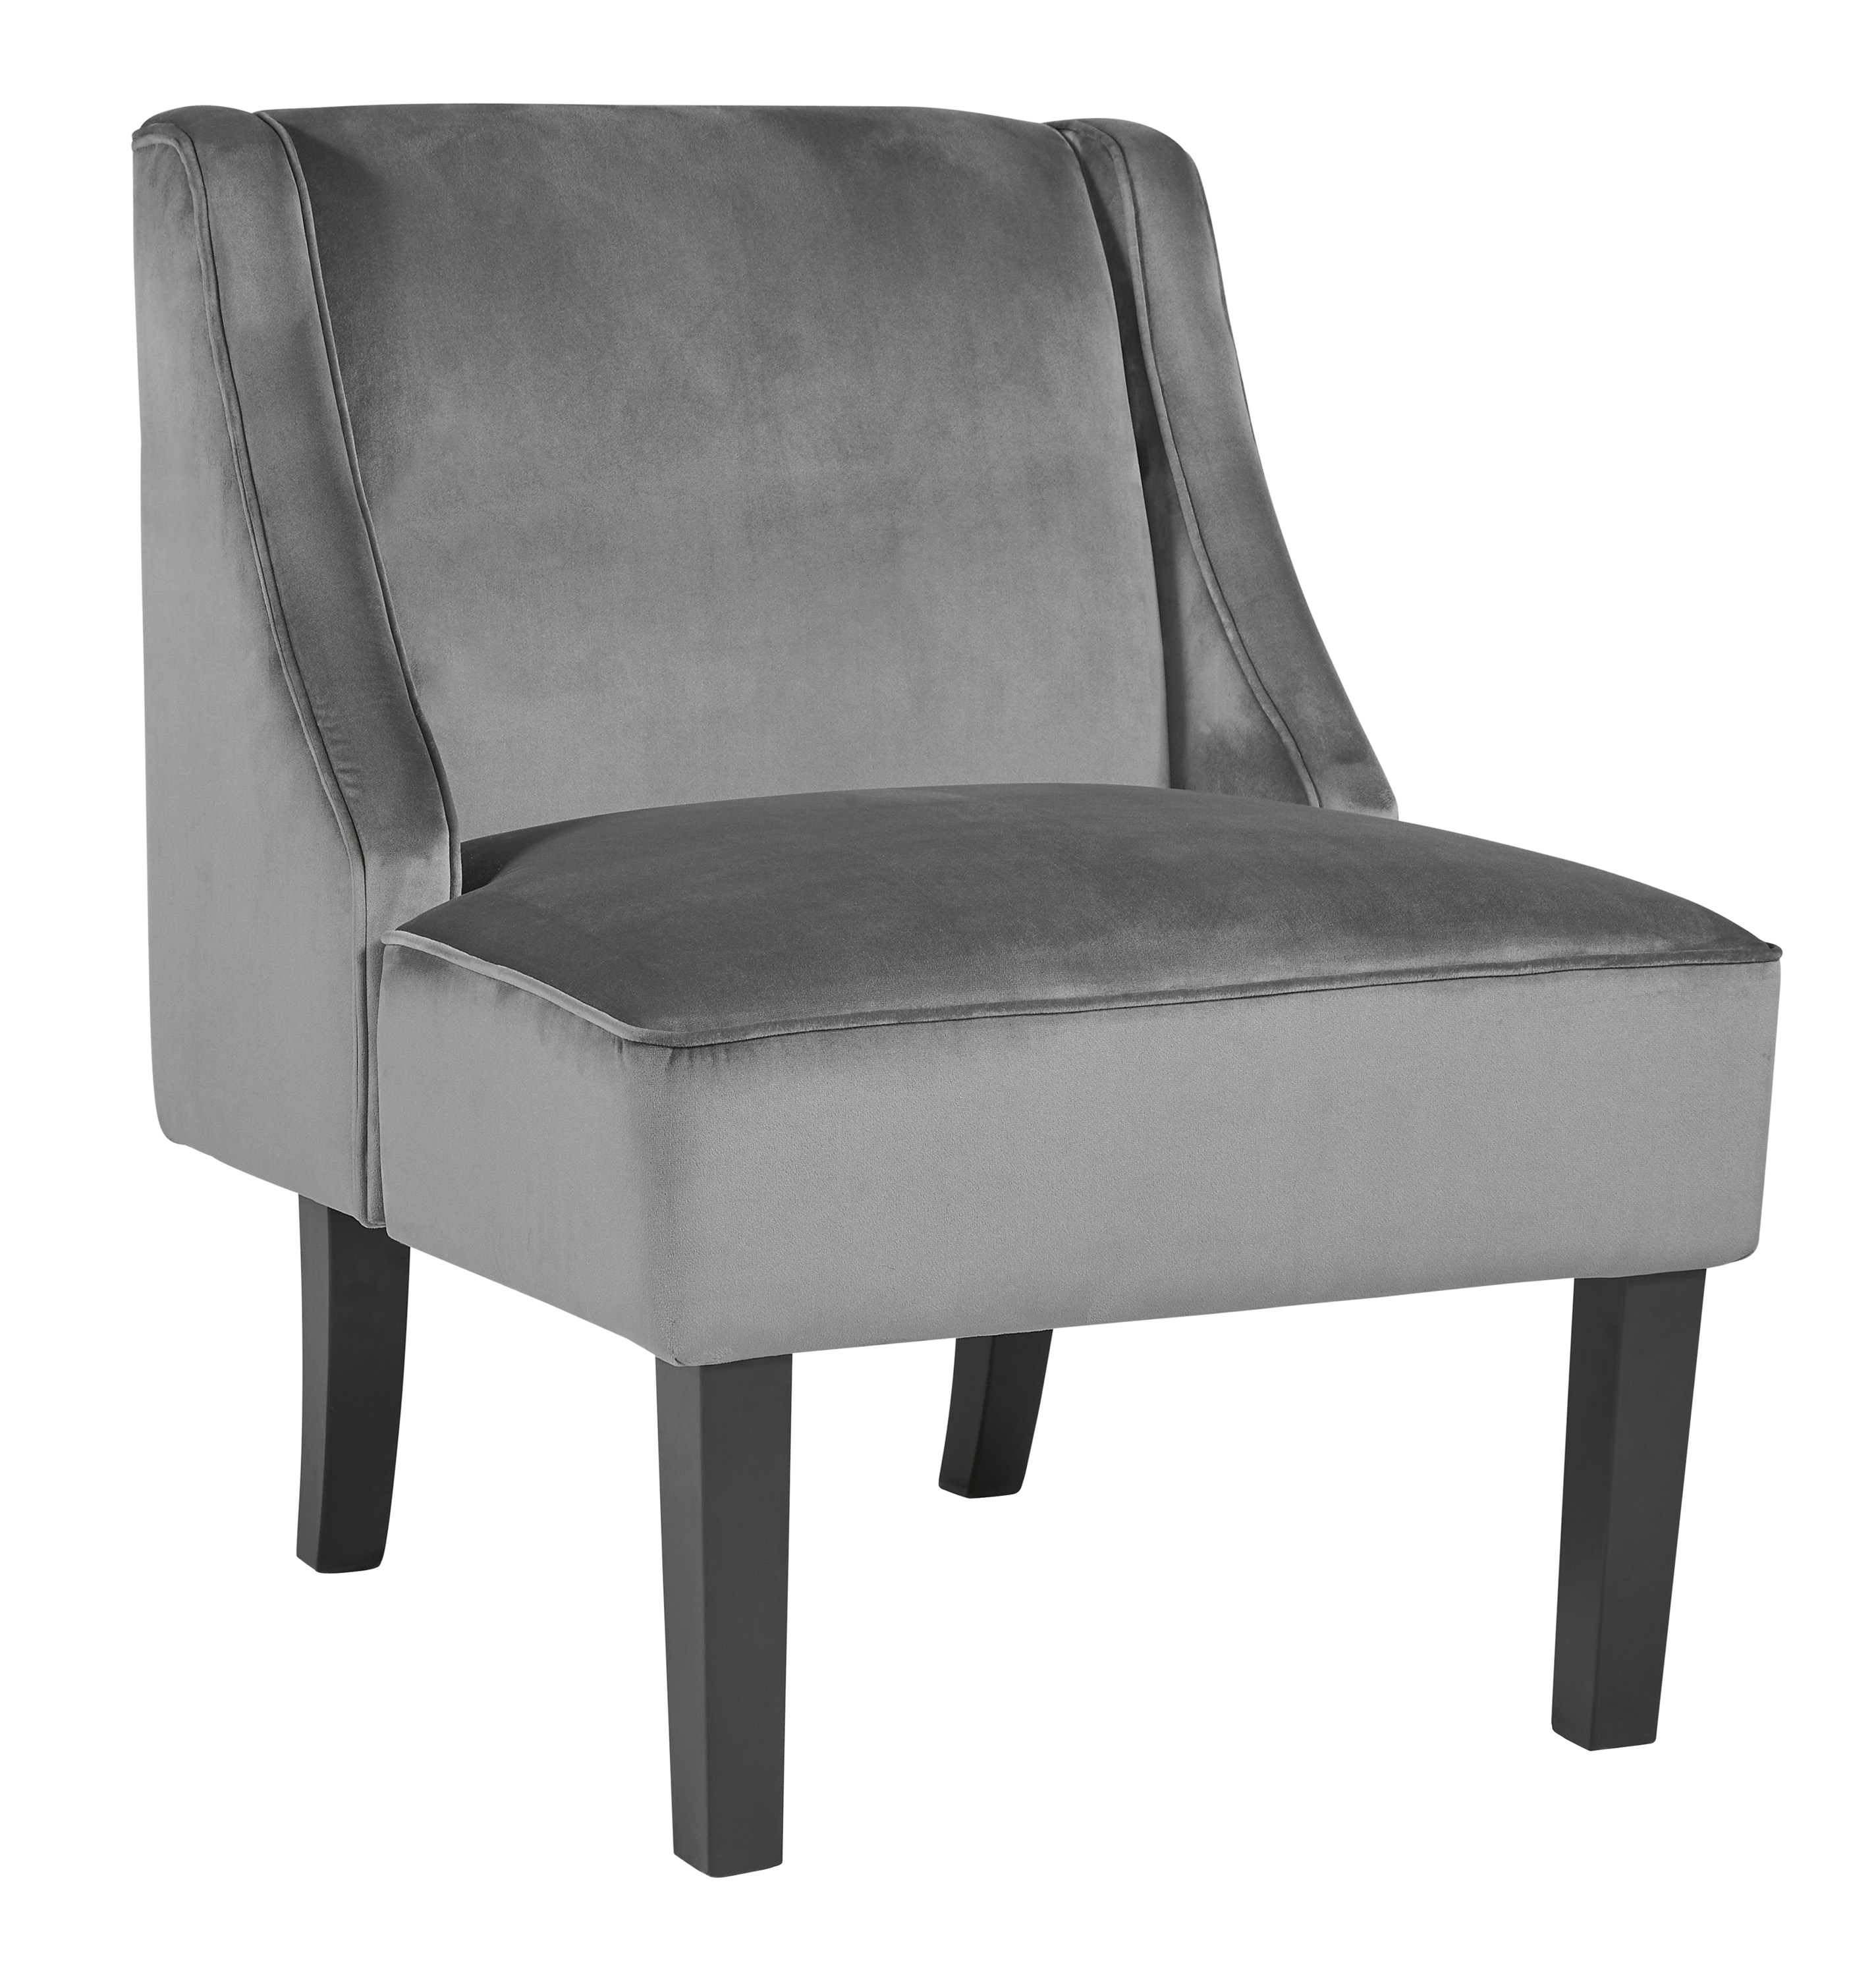 Janesley Accent Chair by Signature Design by Ashley at Furniture Fair - North Carolina